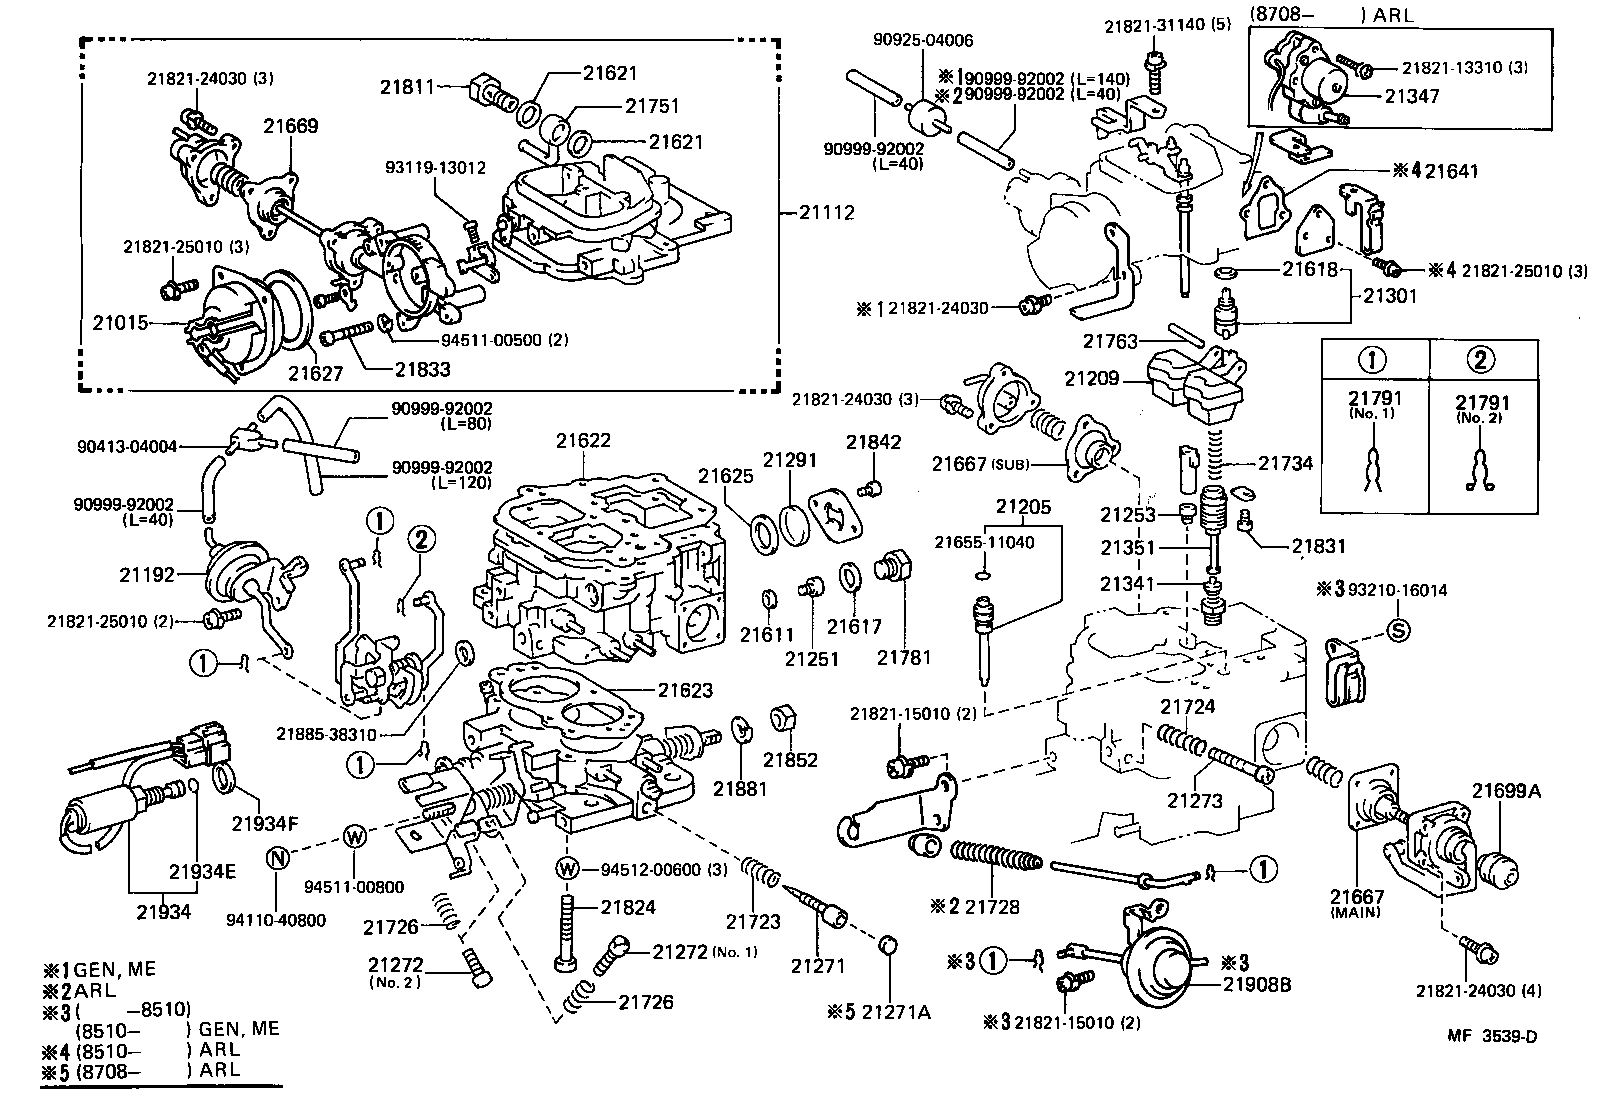 toyota 2f engine parts diagram  toyota  auto wiring diagram